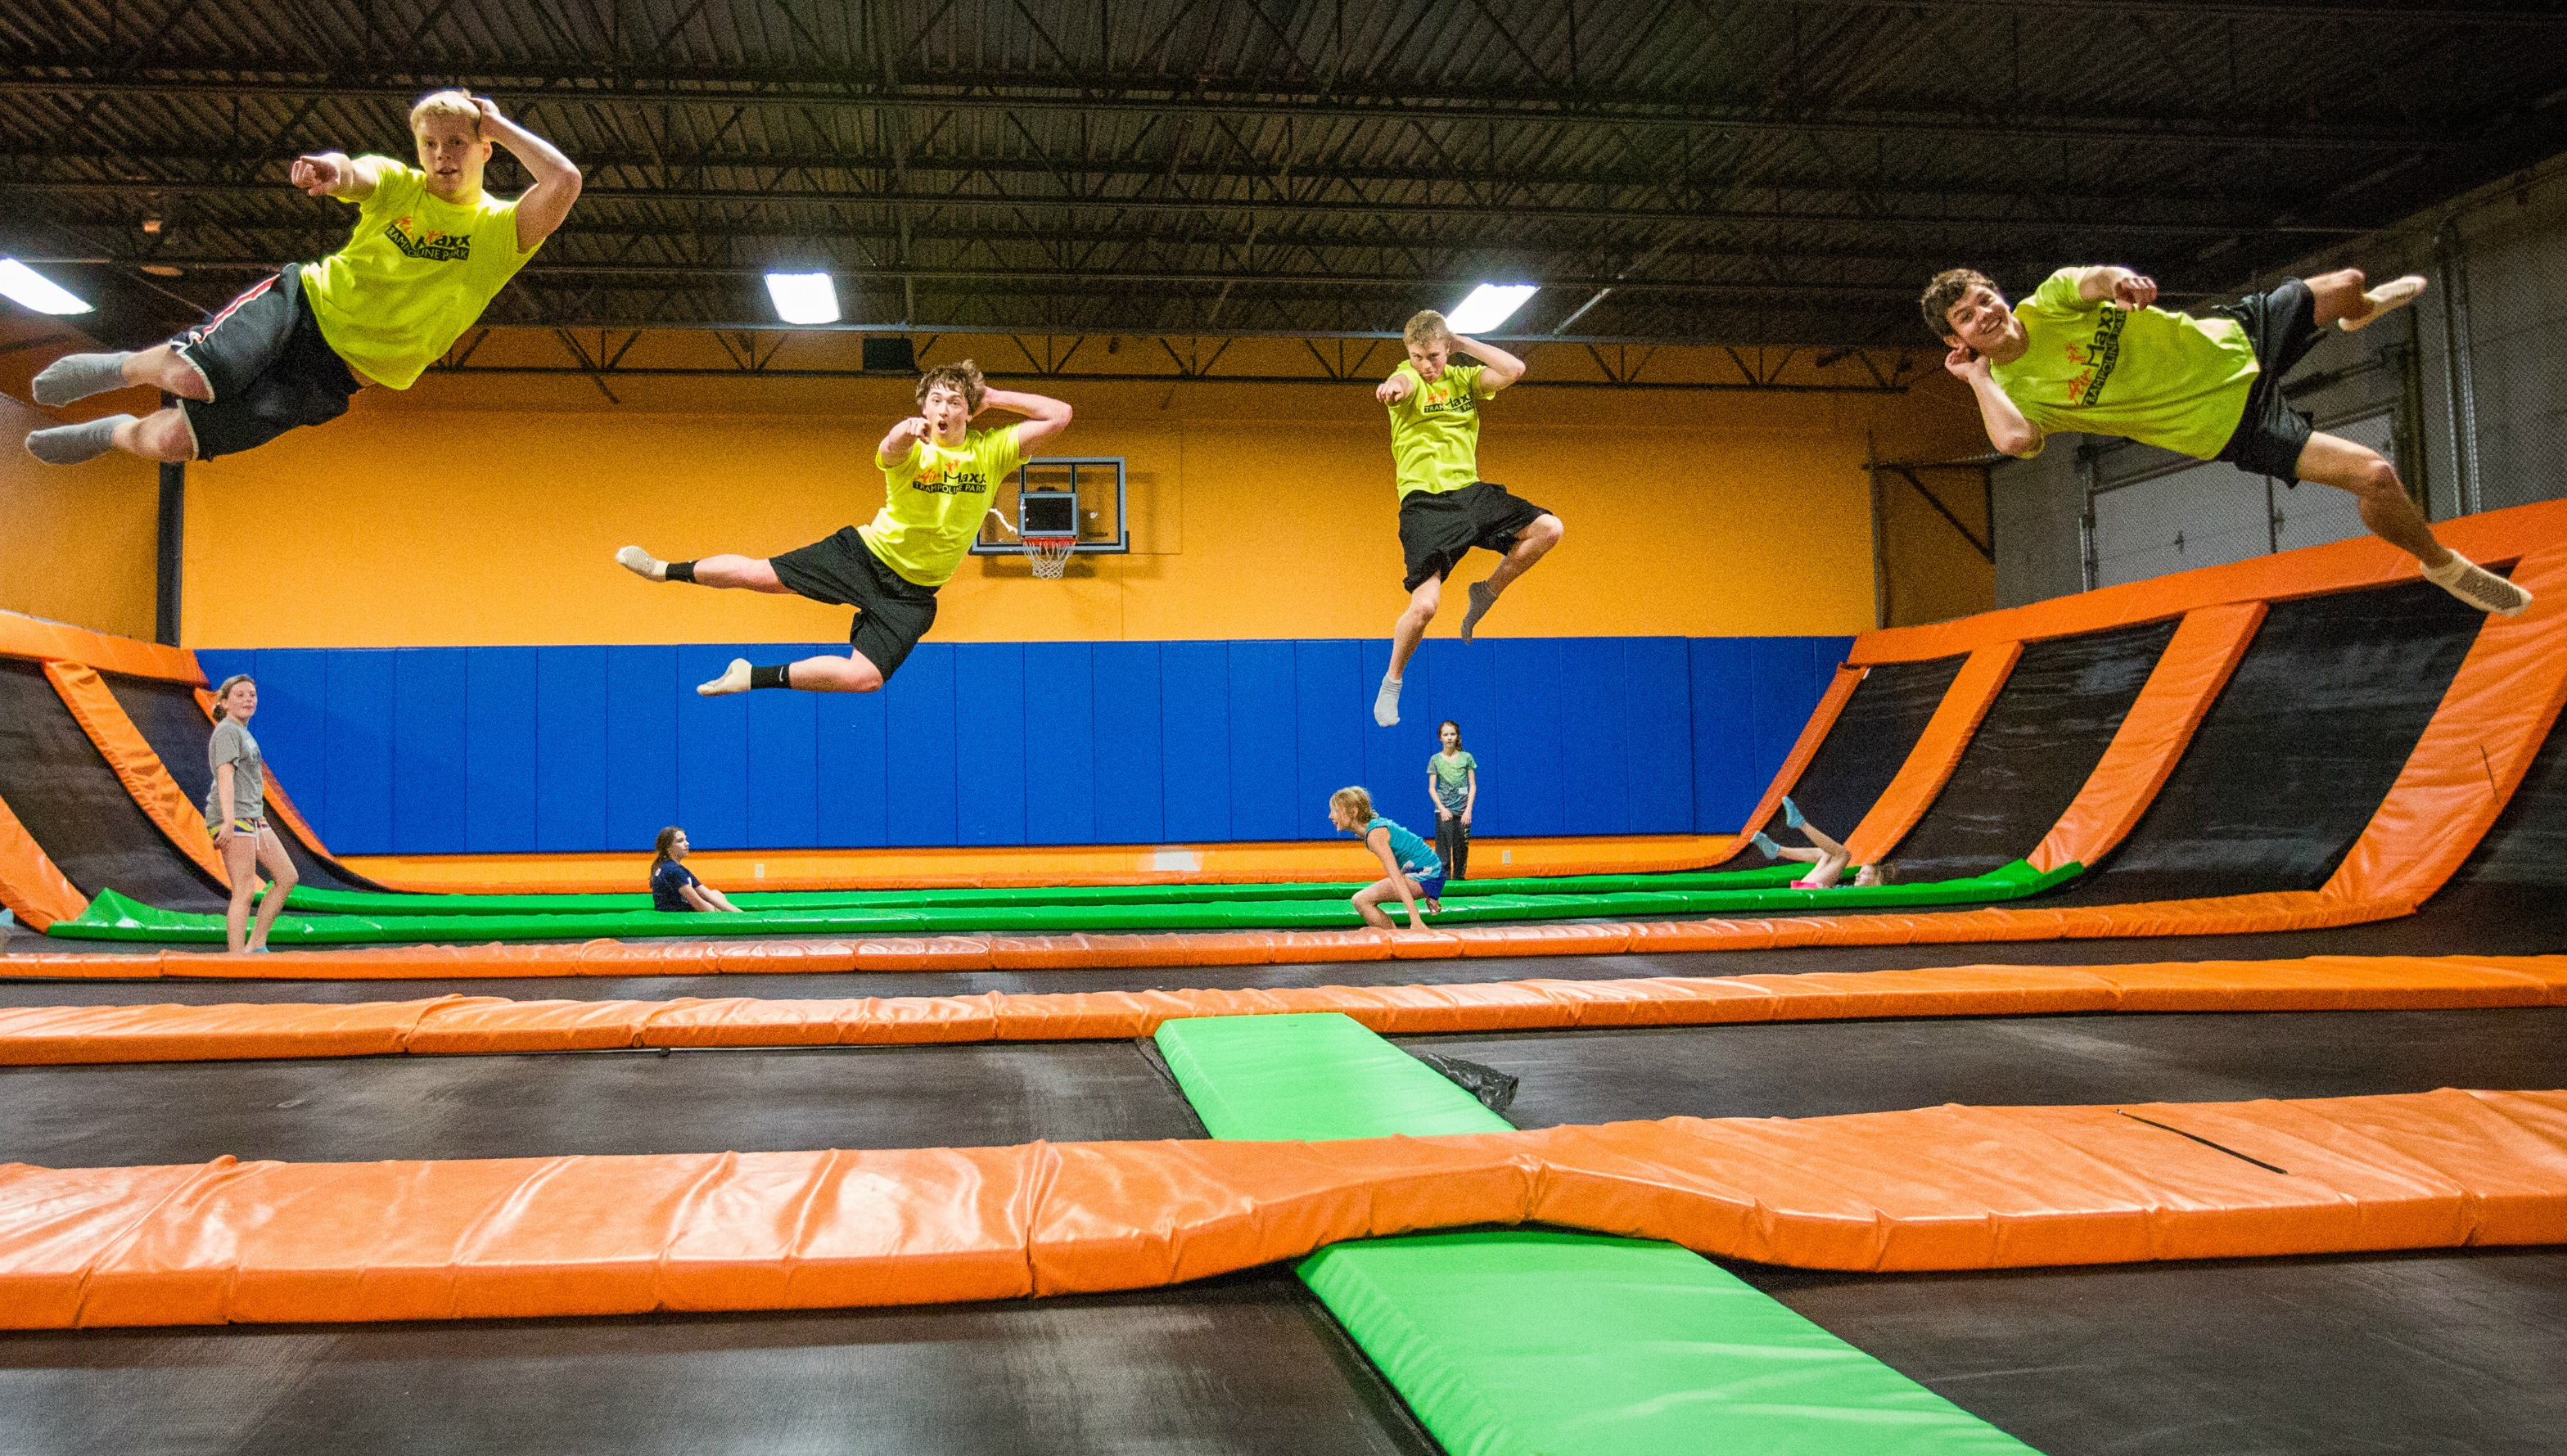 airmaxx trampoline park coupons near me in saint cloud 8coupons. Black Bedroom Furniture Sets. Home Design Ideas